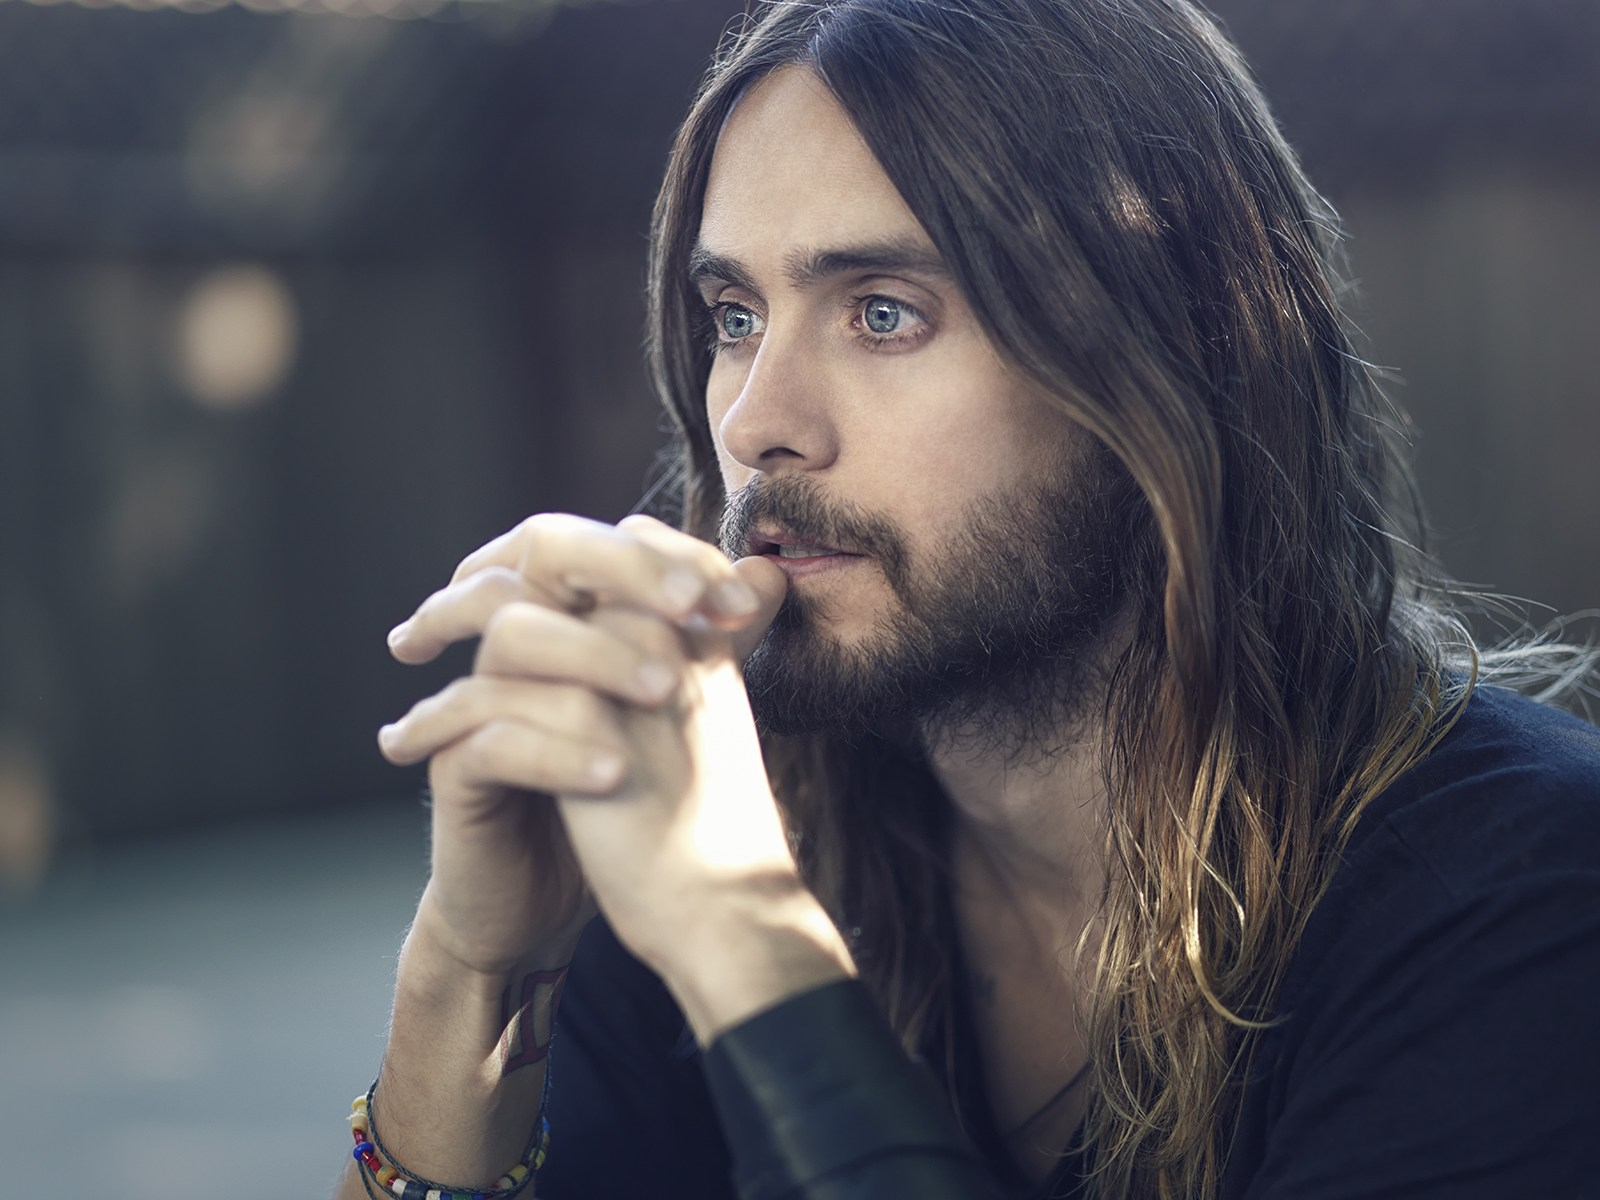 Jared leto images jared leto hd wallpaper and background photos - Jared Leto Computer Wallpaper 50875